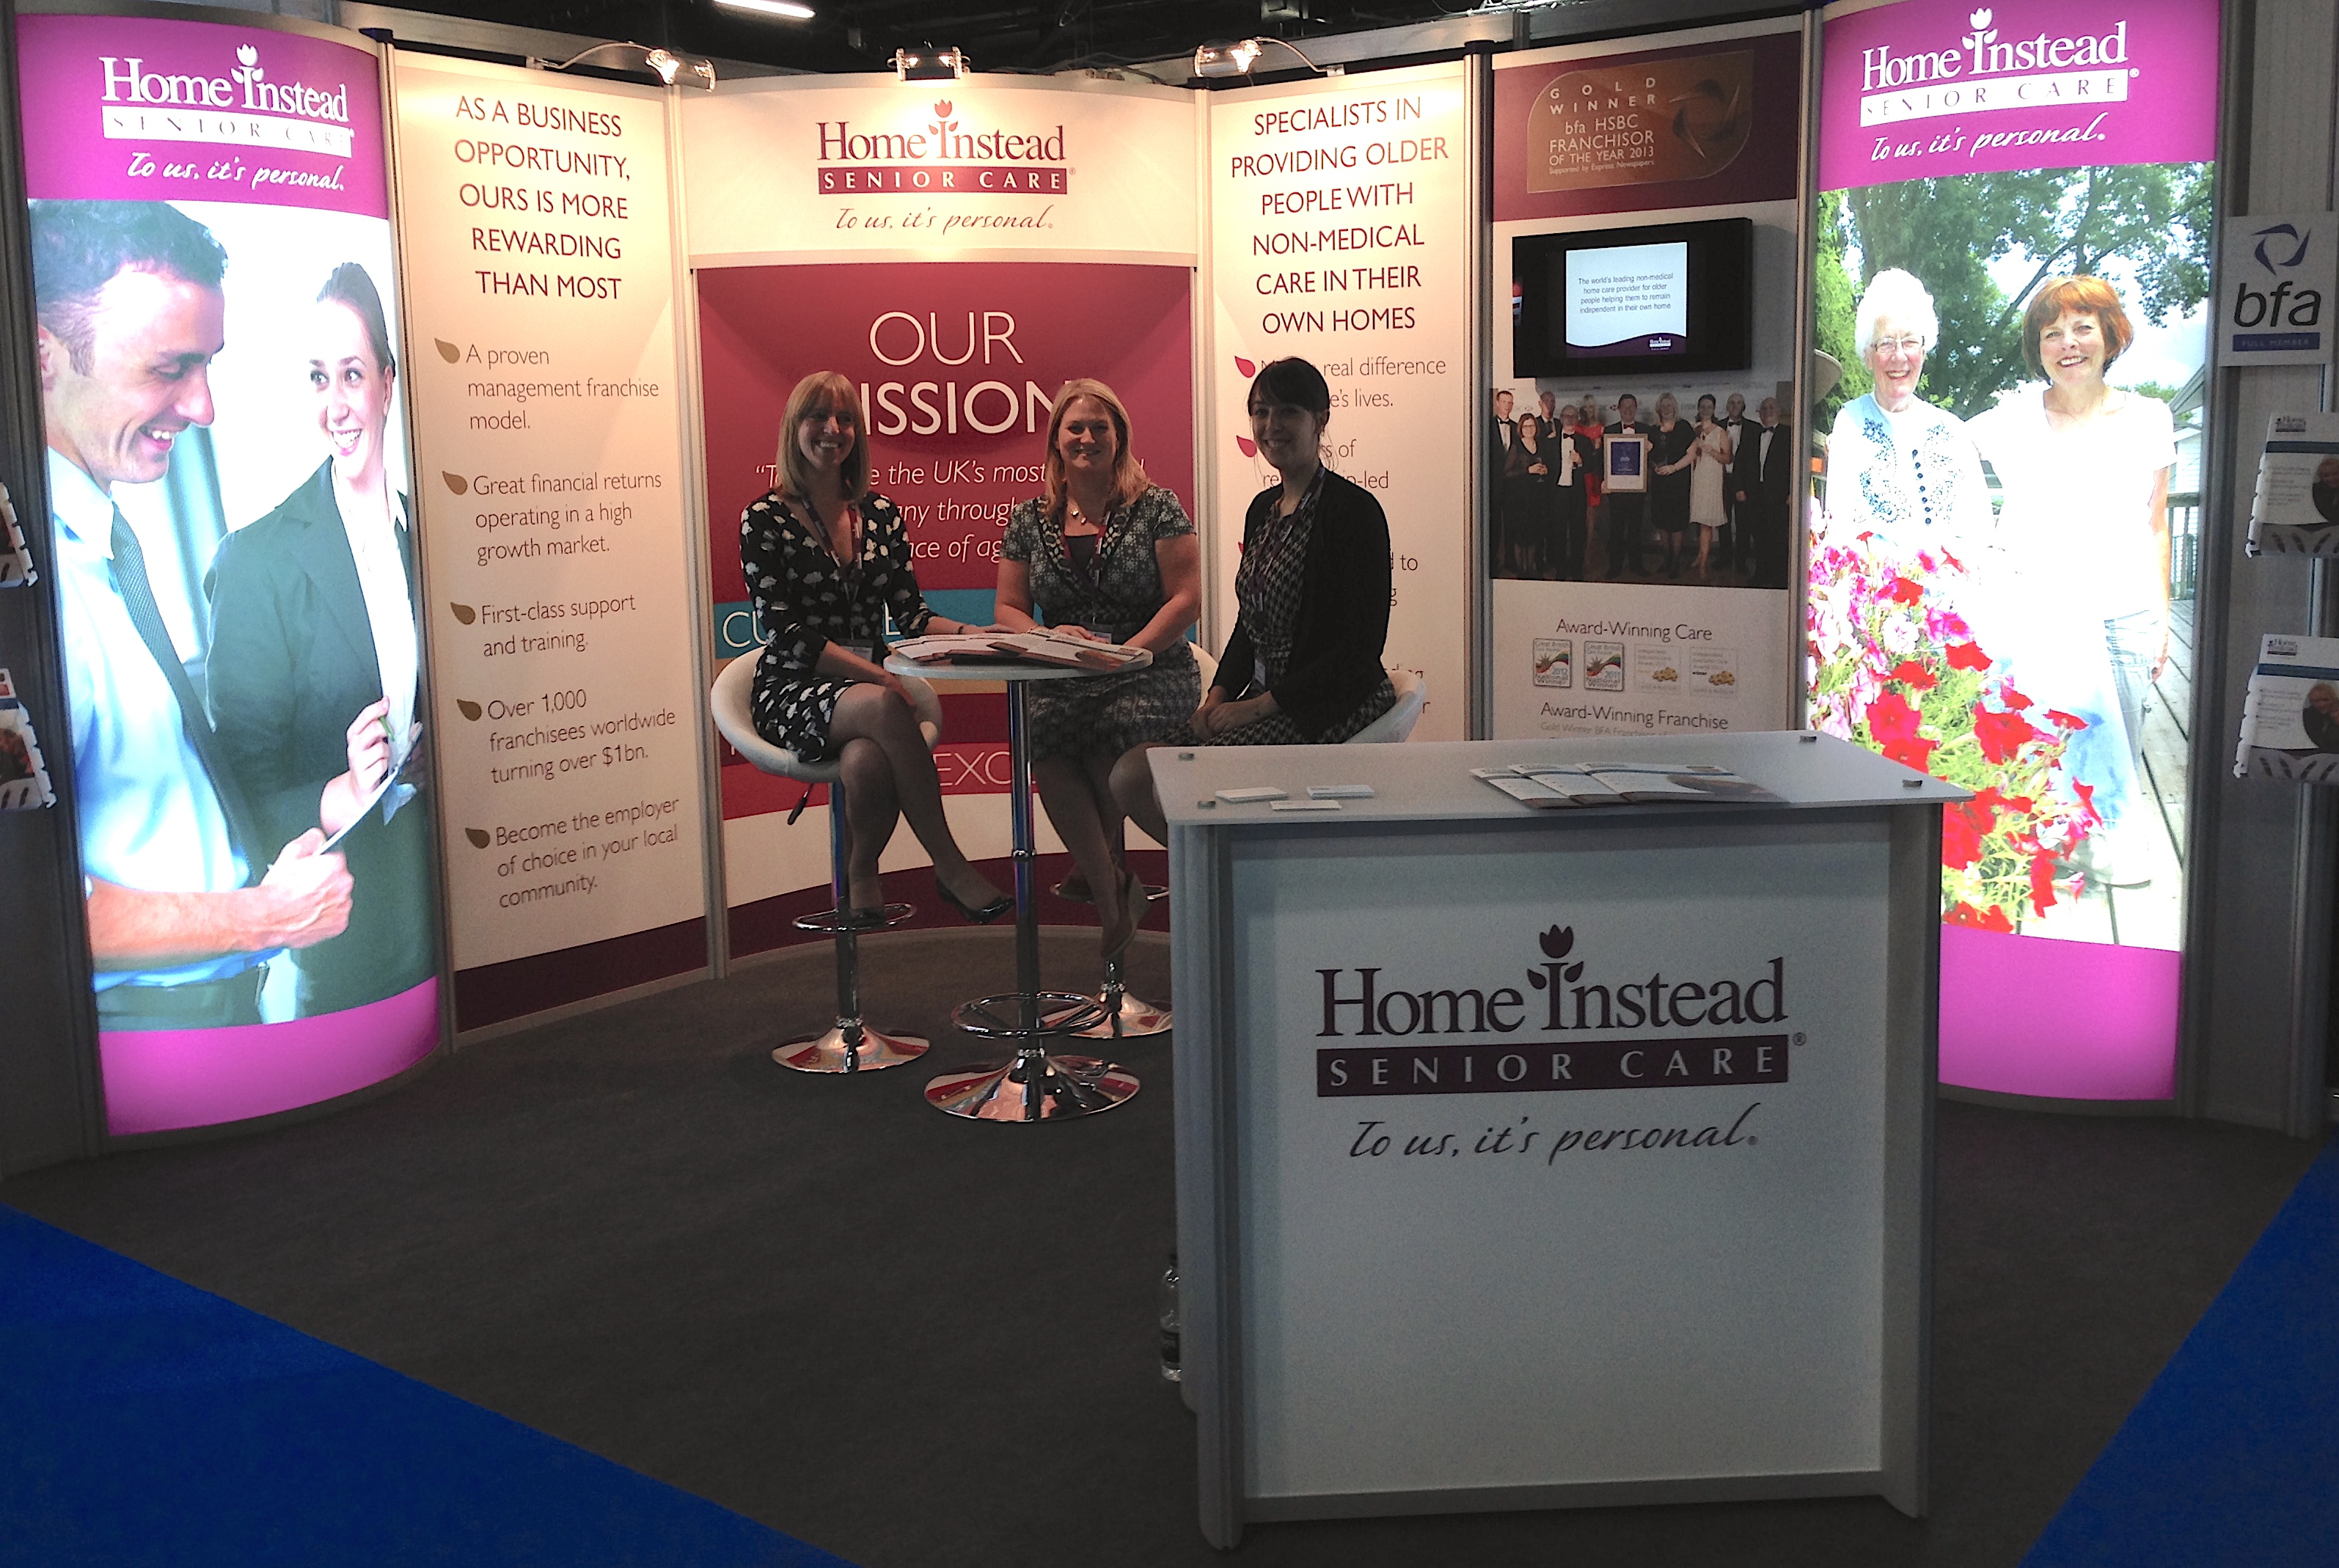 Home Instead Senior Care show stand